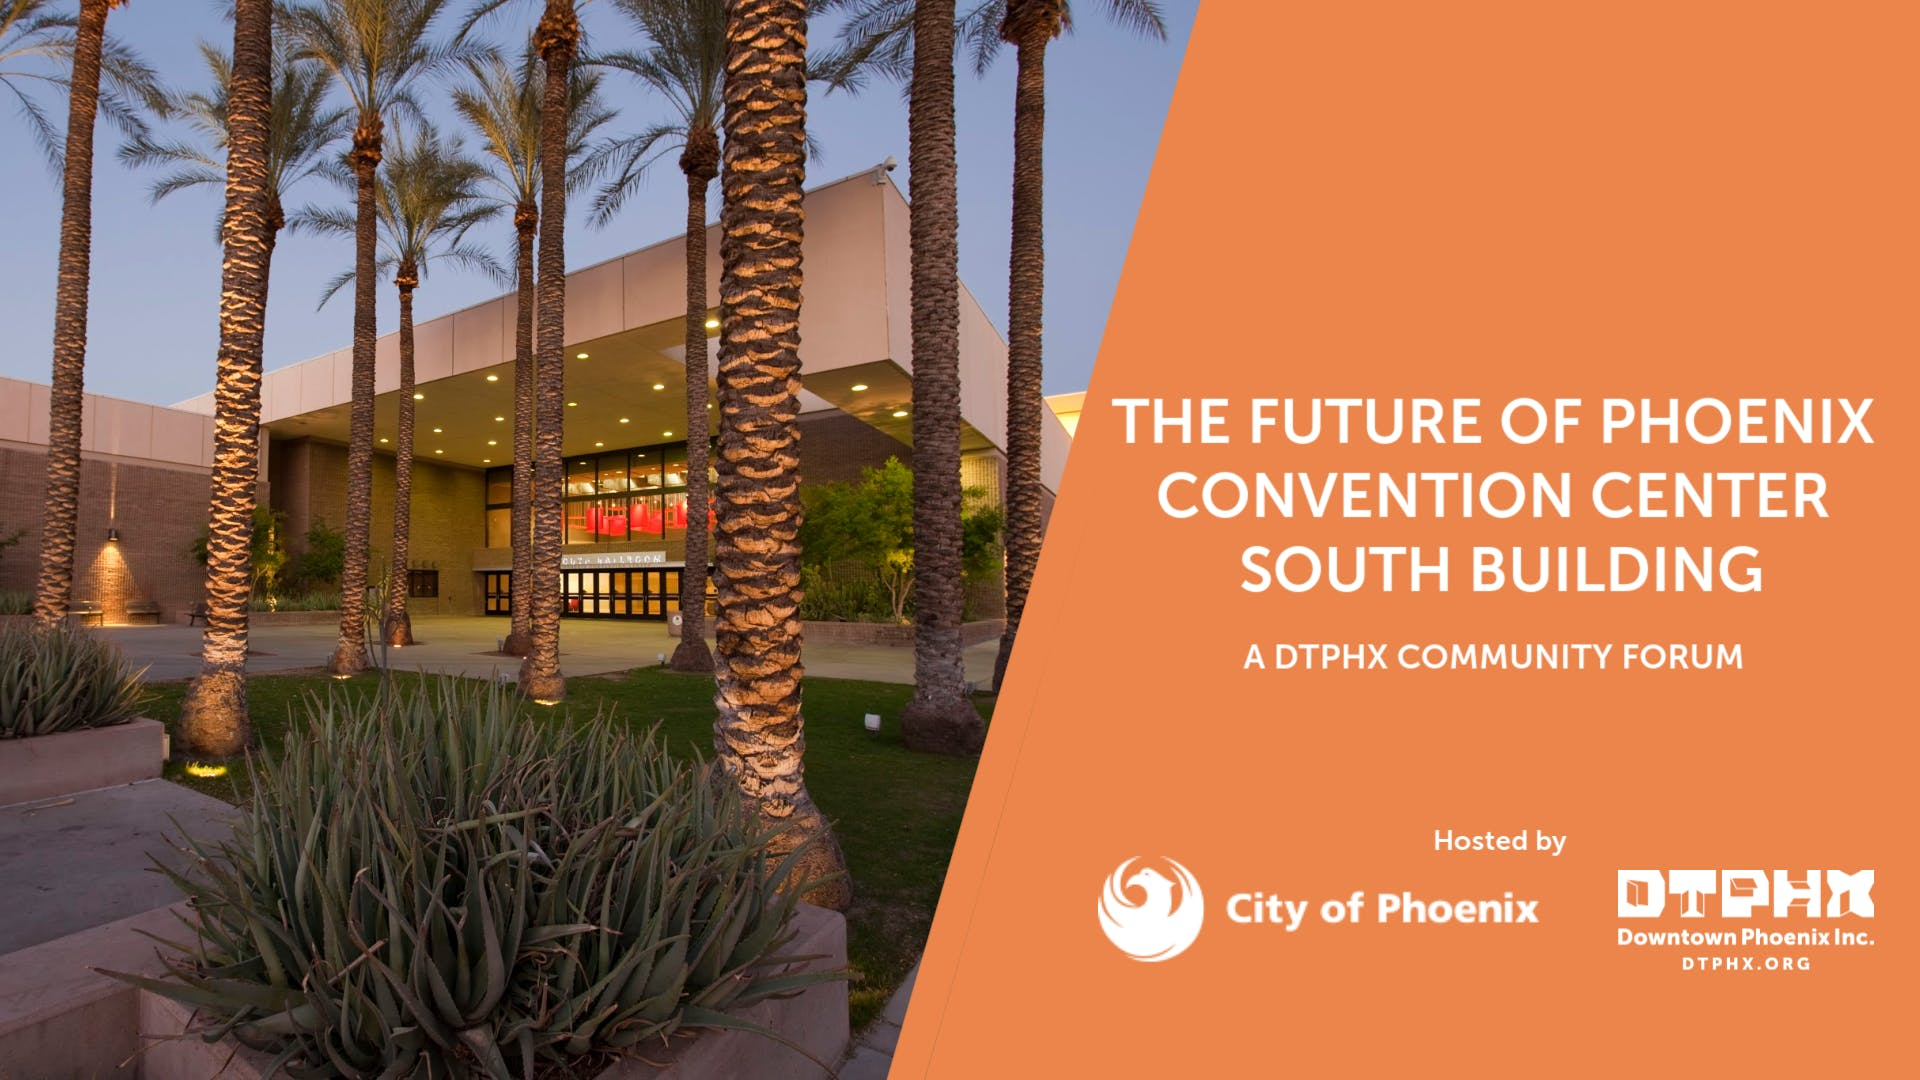 The Future of Phoenix Convention Center South Building